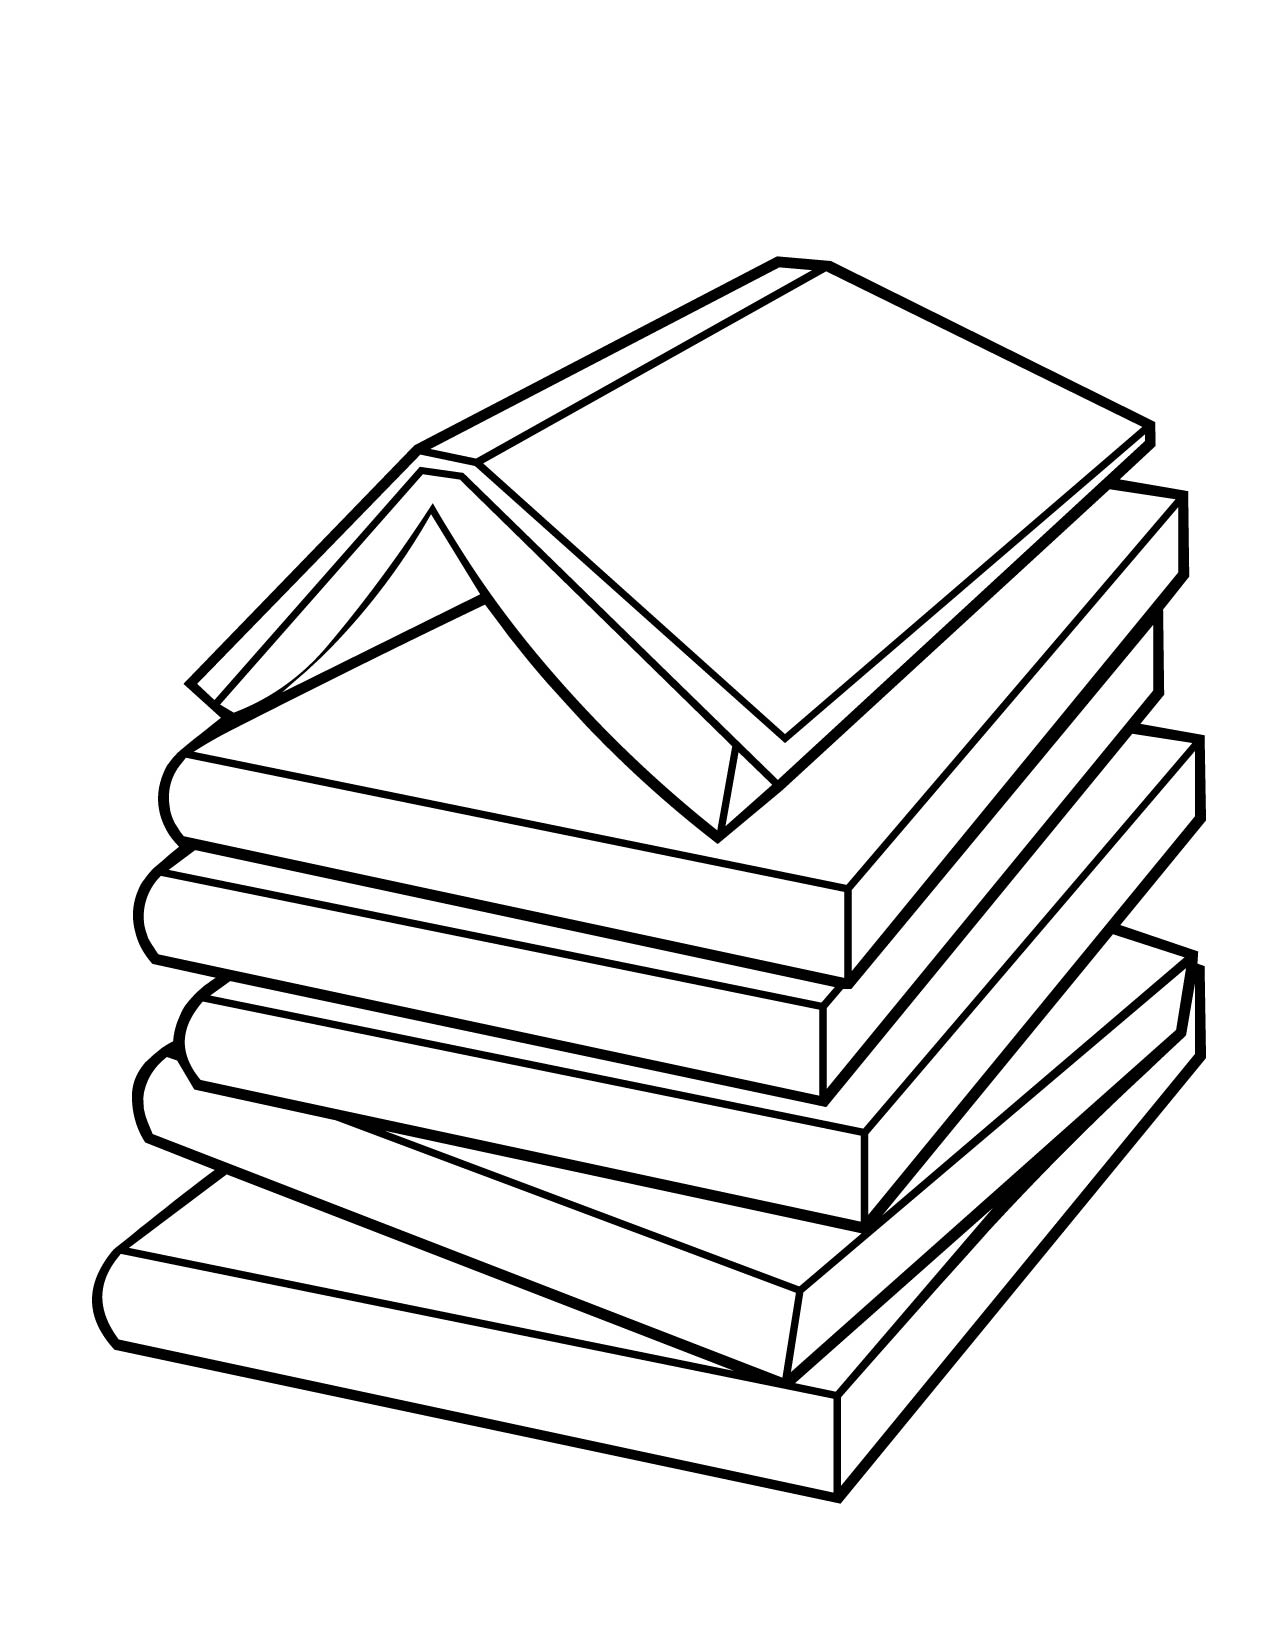 coloring books with white pages - photo#17